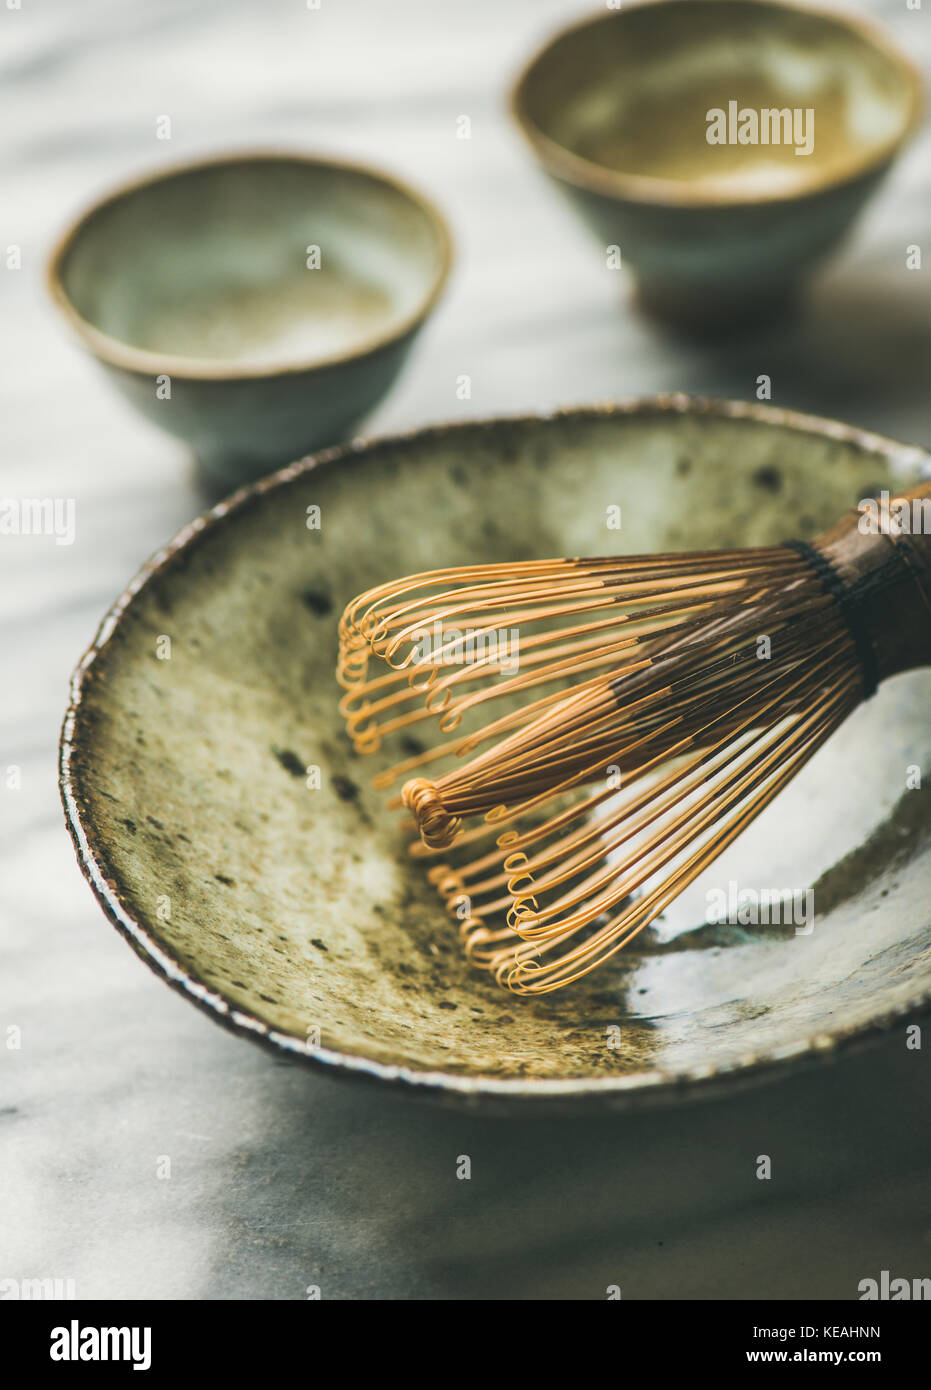 Japanese tools and bowls for brewing matcha tea, selective focus - Stock Image